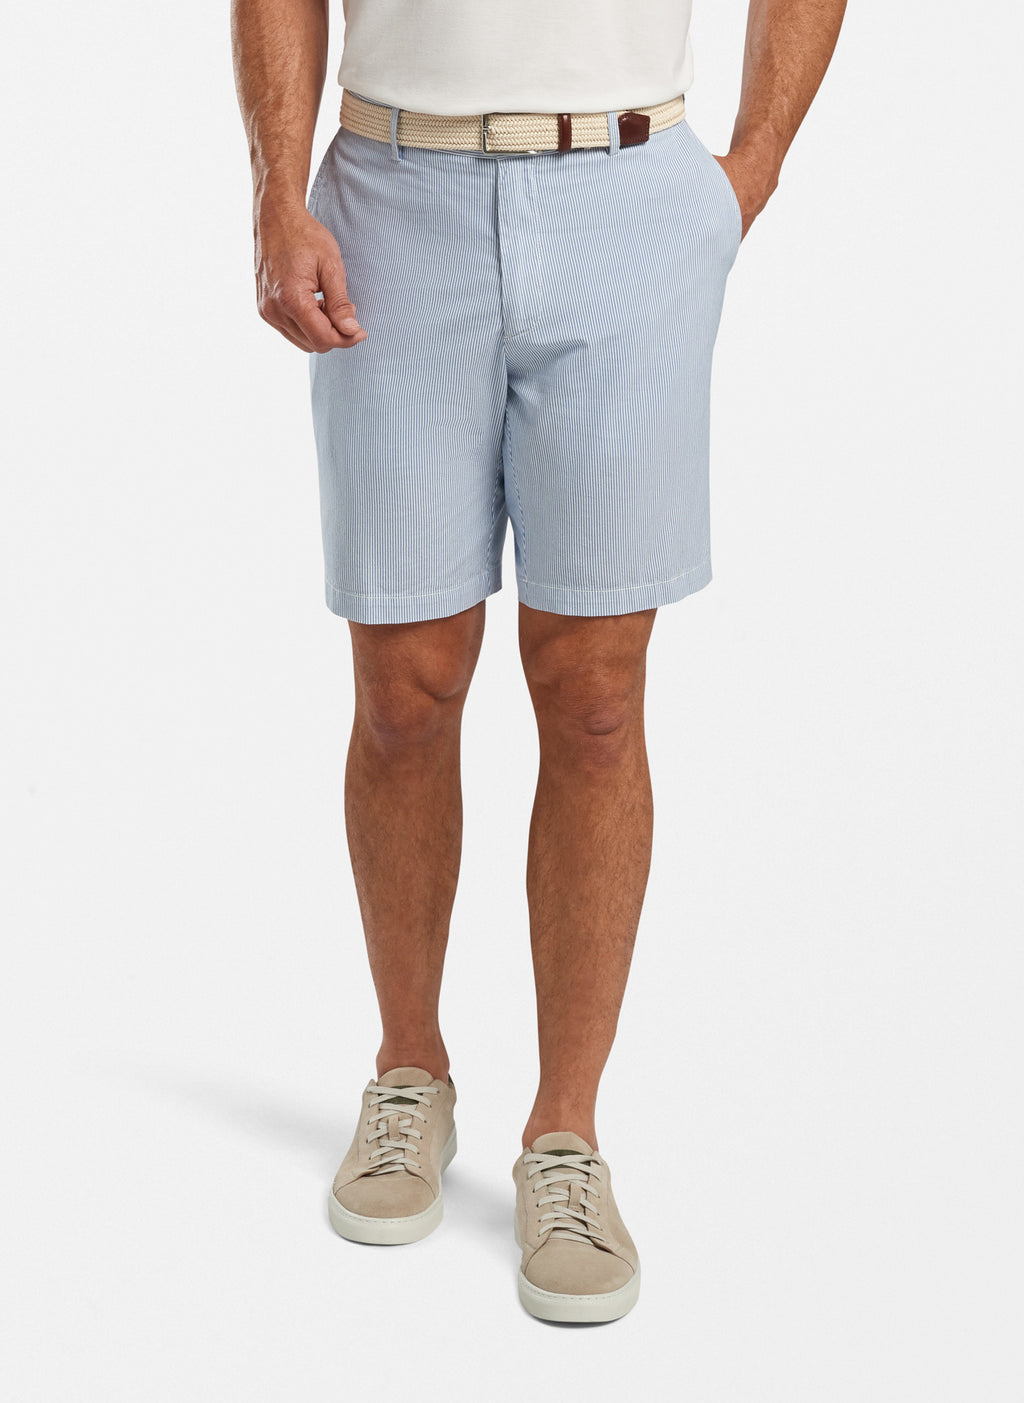 Peter Millar Pinstripe Cotton Blend Short MS20B11